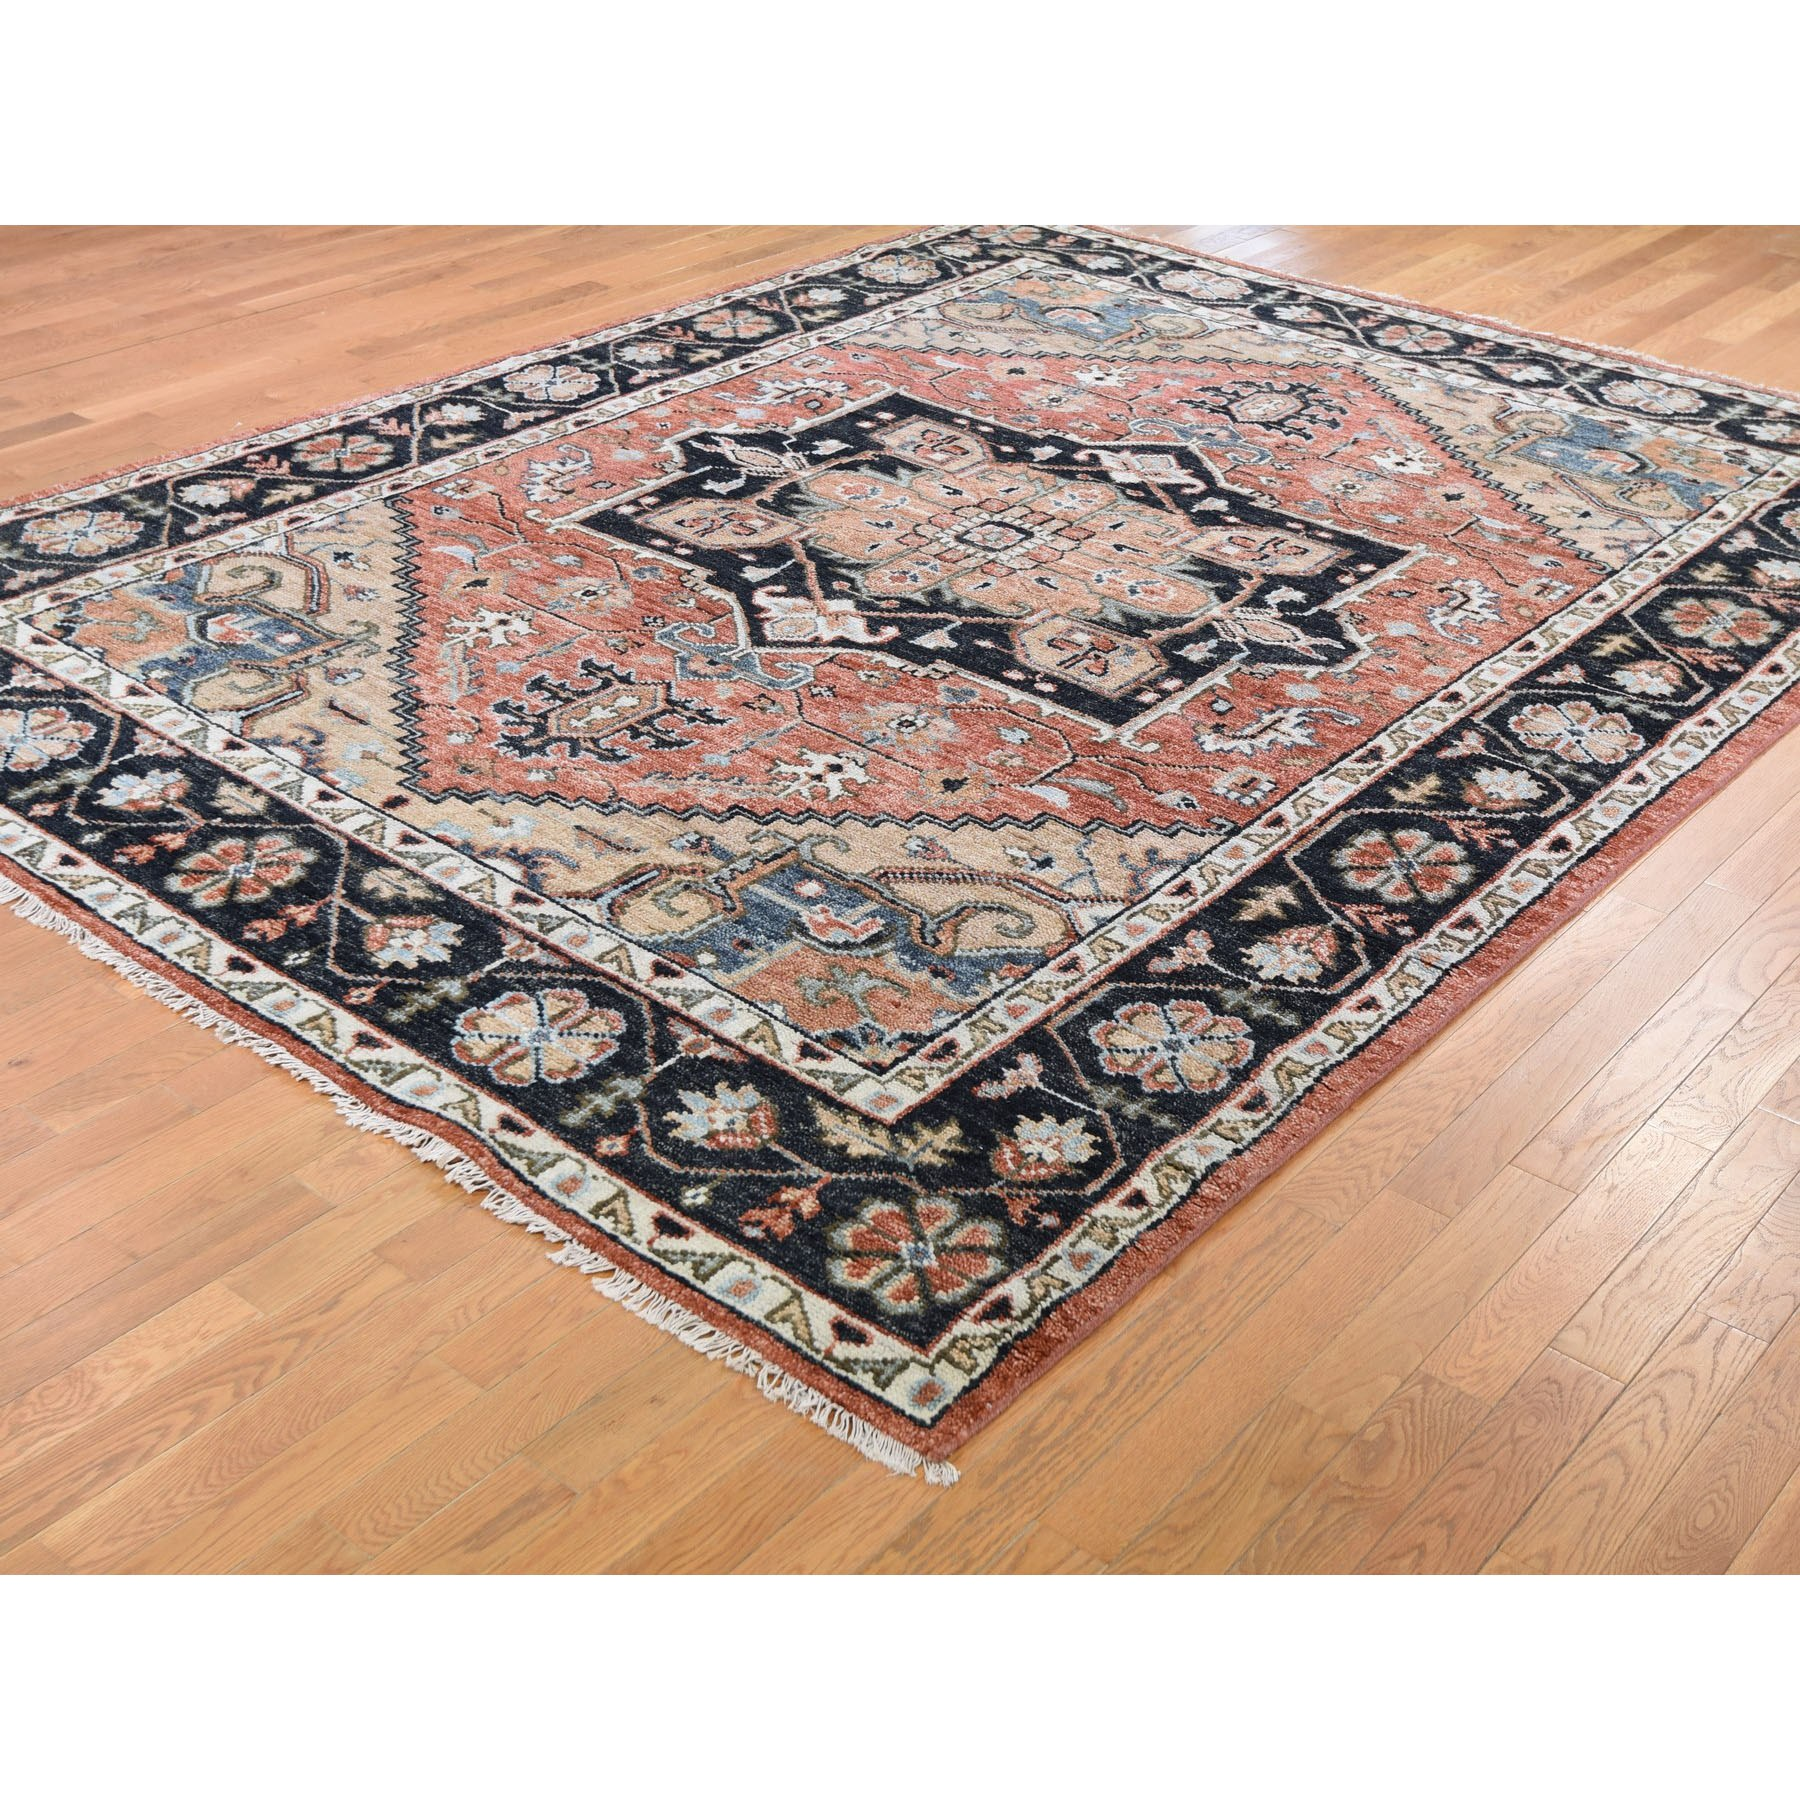 "9'x11'9"" Coral Supple Collection Heriz Design Soft Wool Hand Knotted Oriental Rug"